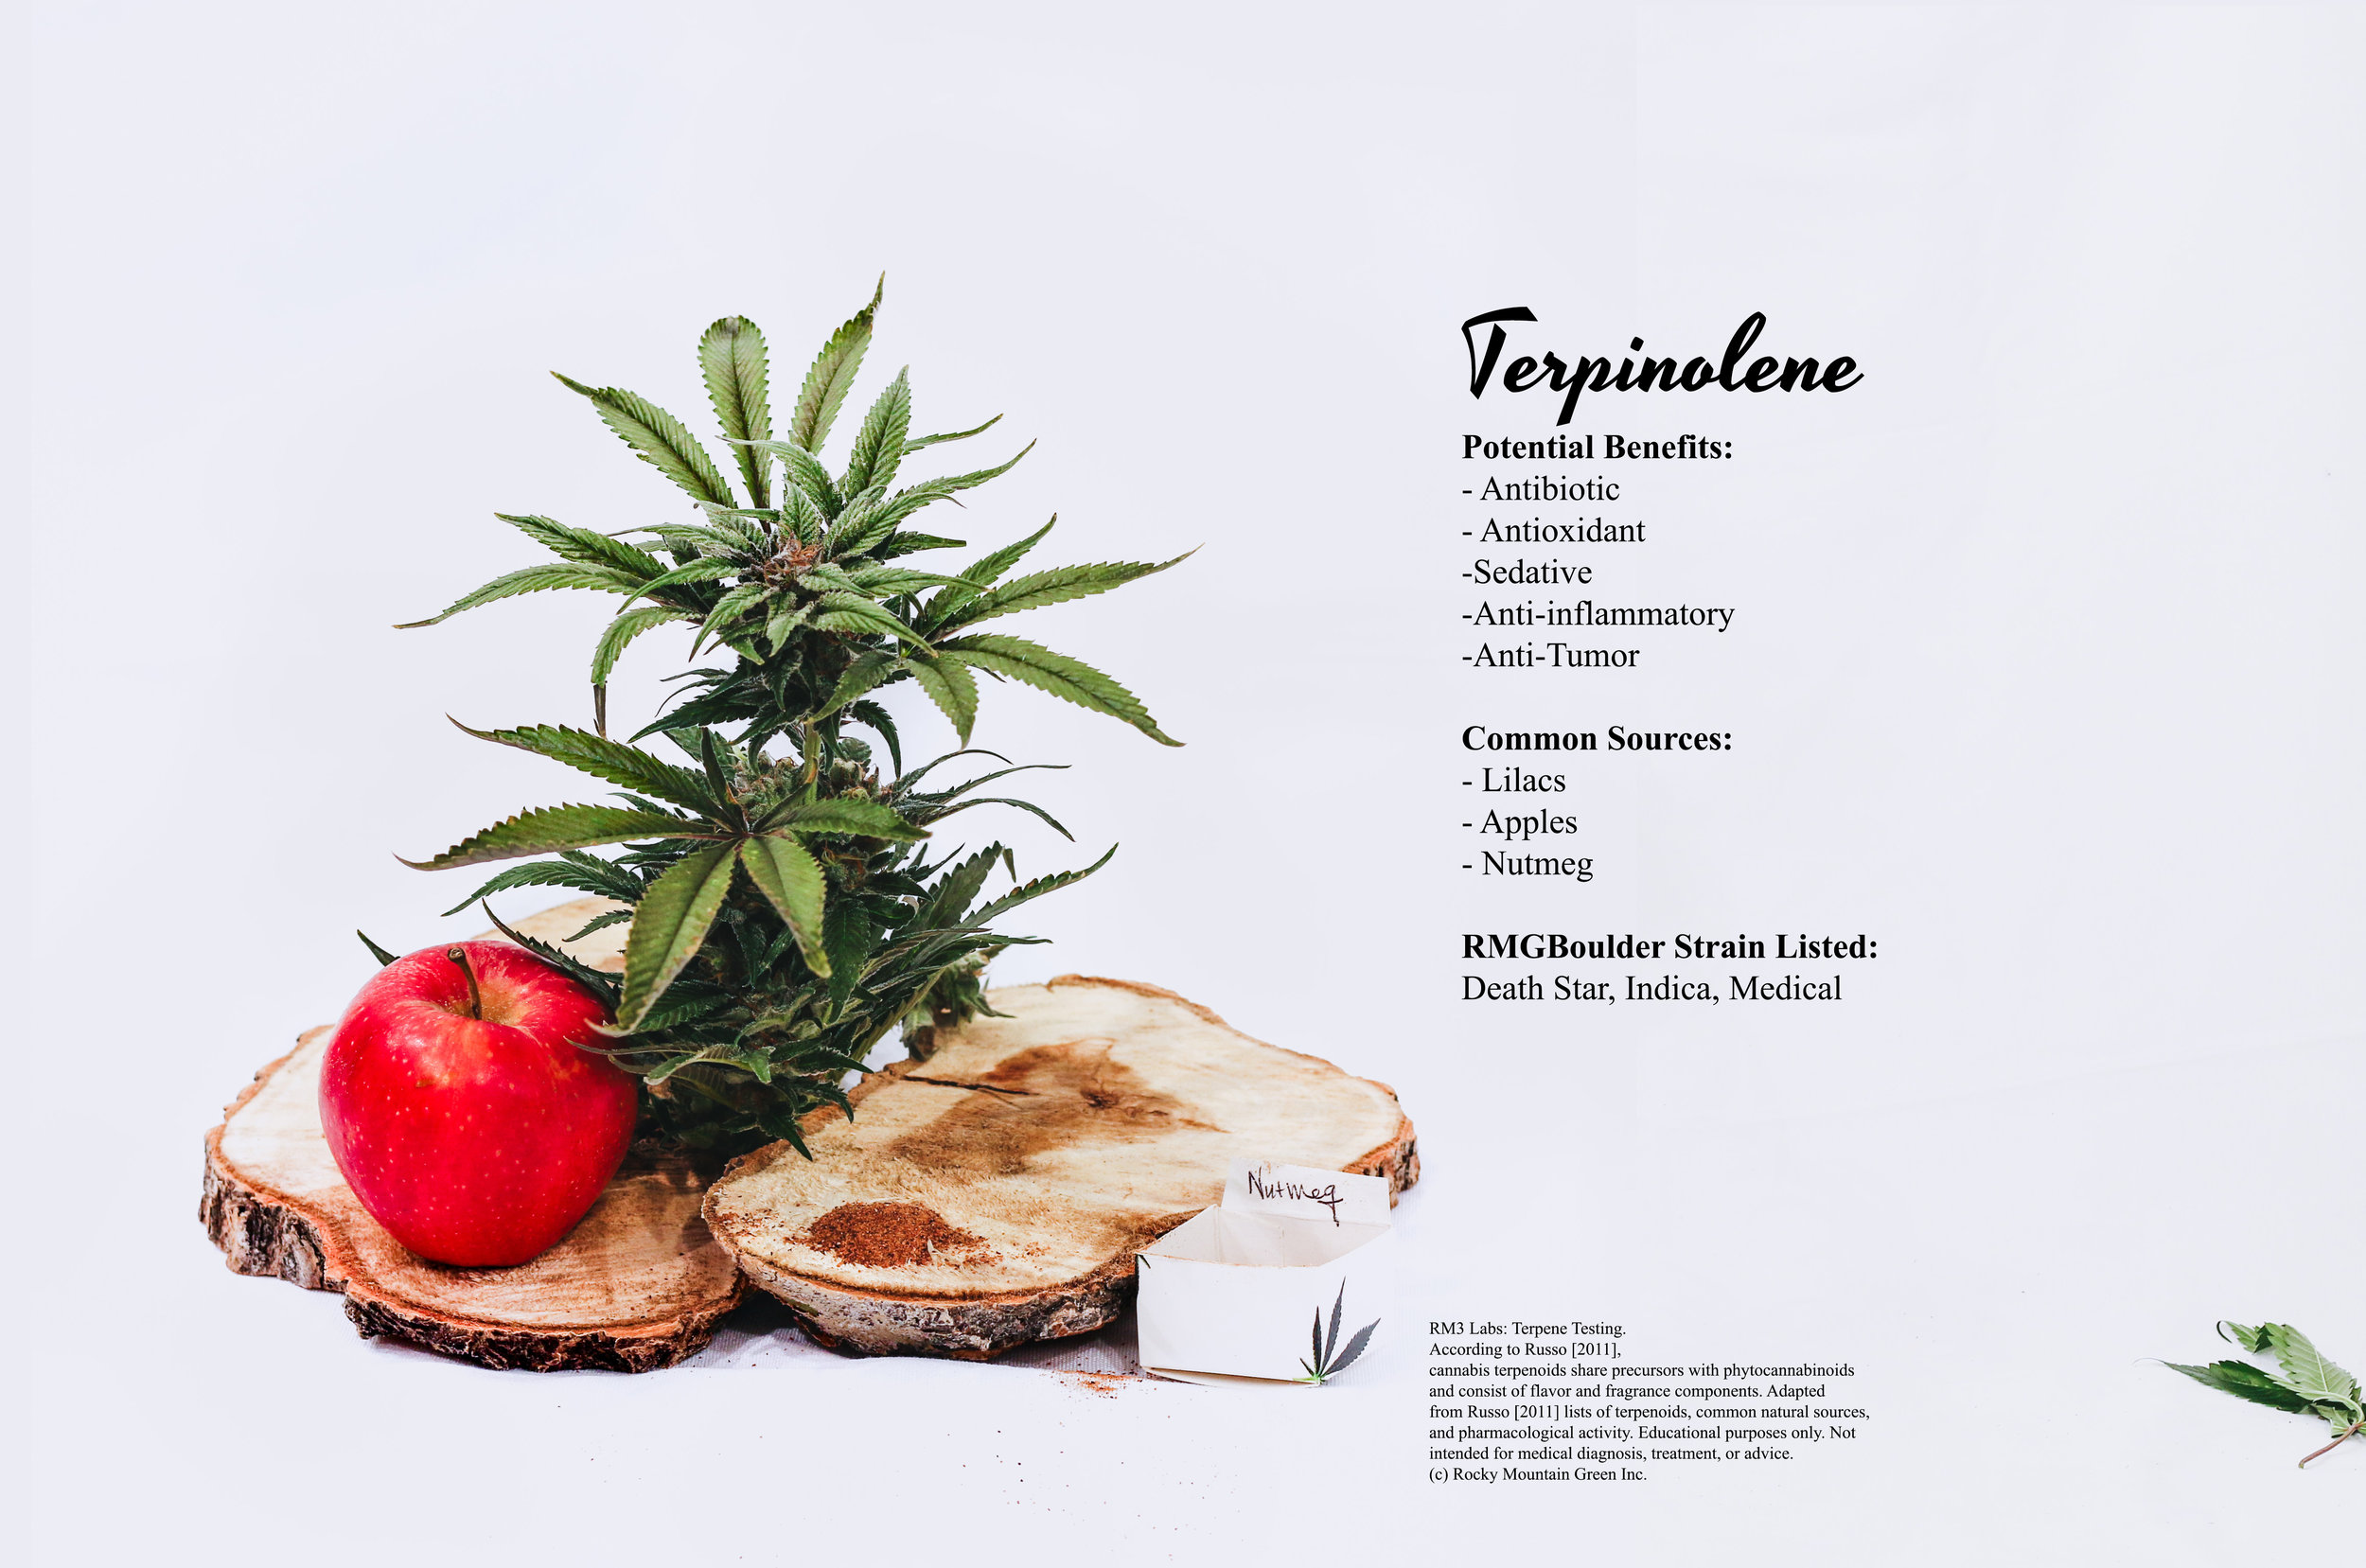 terpinolene benefits